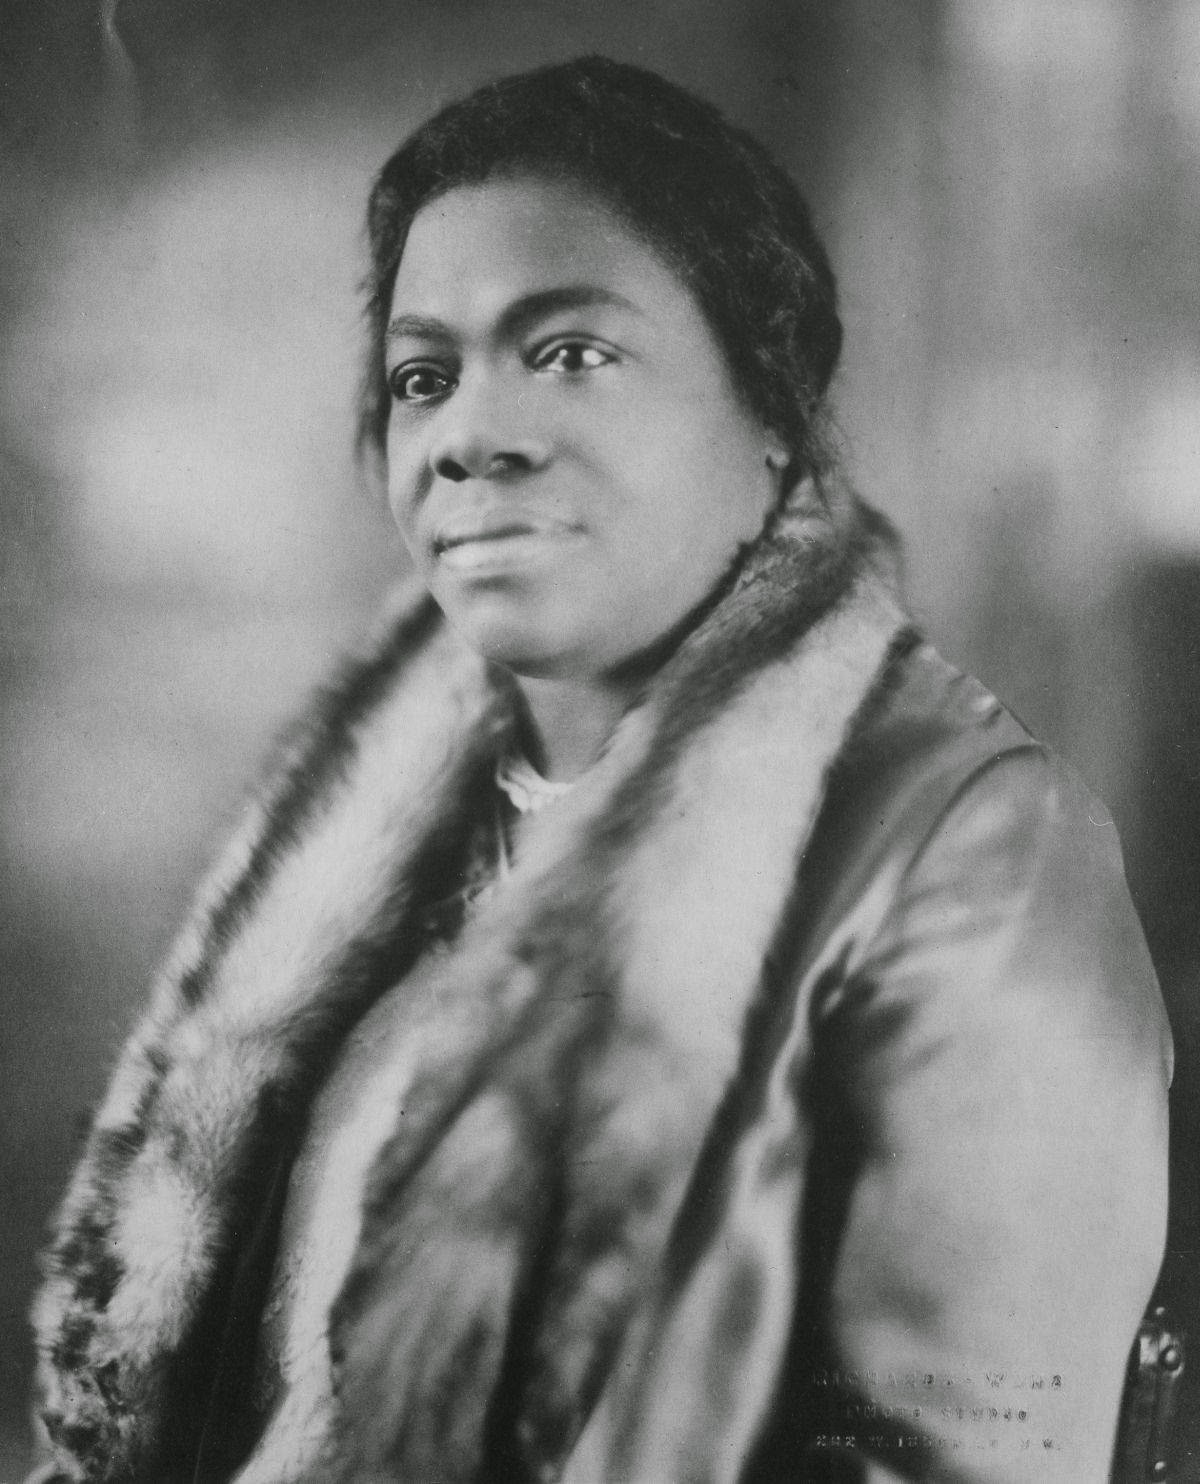 the life and contributions to the civil rights and suffrage movement by mary church terrell This is the second post in a three part series about mary mcleod bethune, each covering one of the three main periods of her life -- her childhood, education, and the foundation of her mission school, her work for suffrage and civil rights, and her legacy as a national political figure.